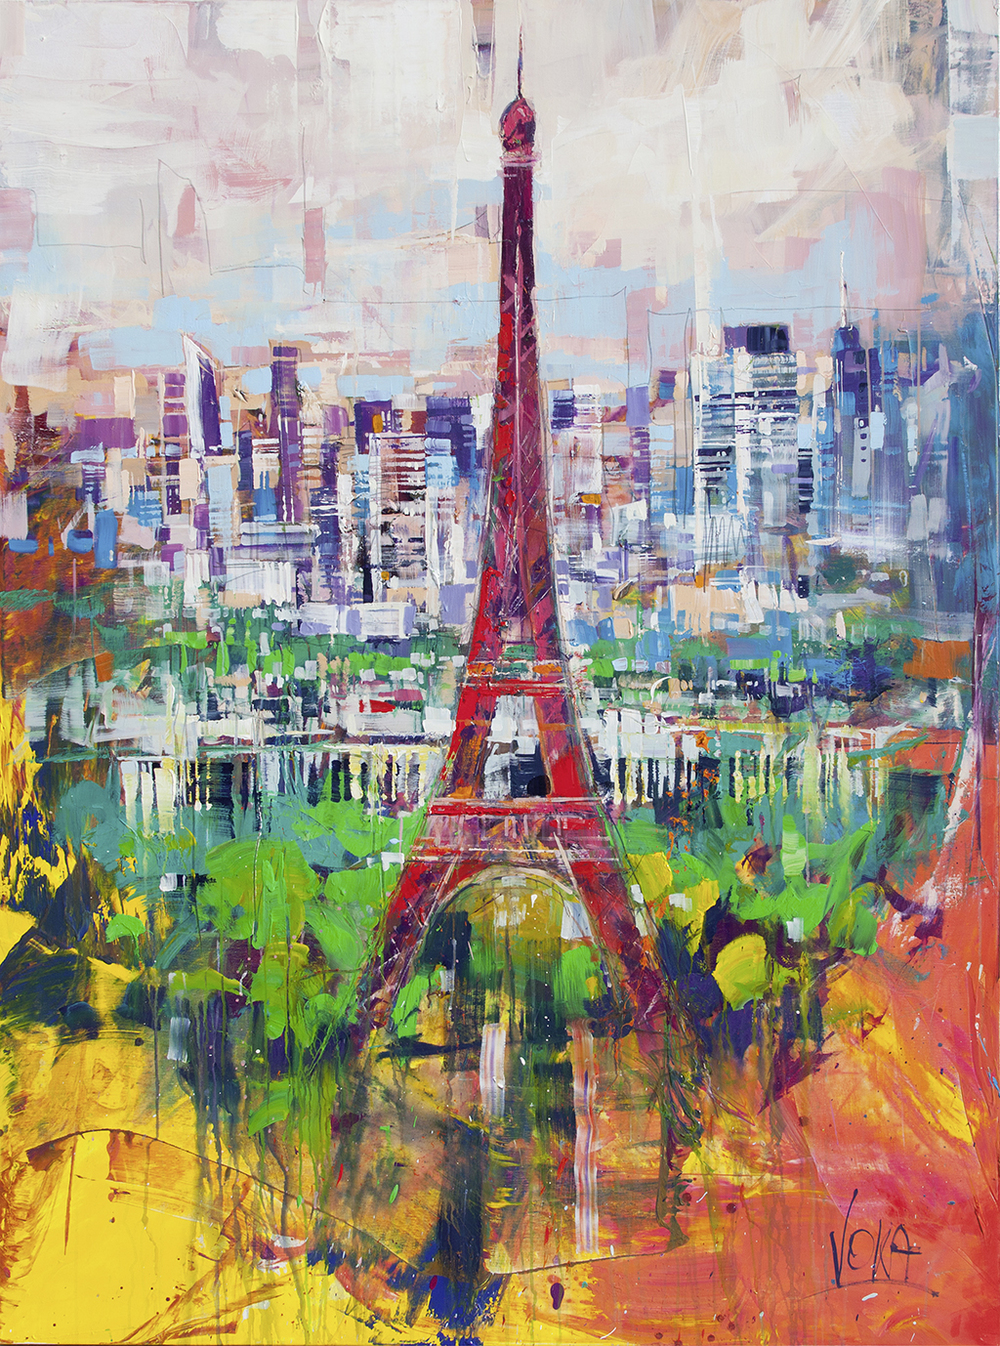 Paris, 200x150cm/78,7x59,1 inch, acrylic on canvas